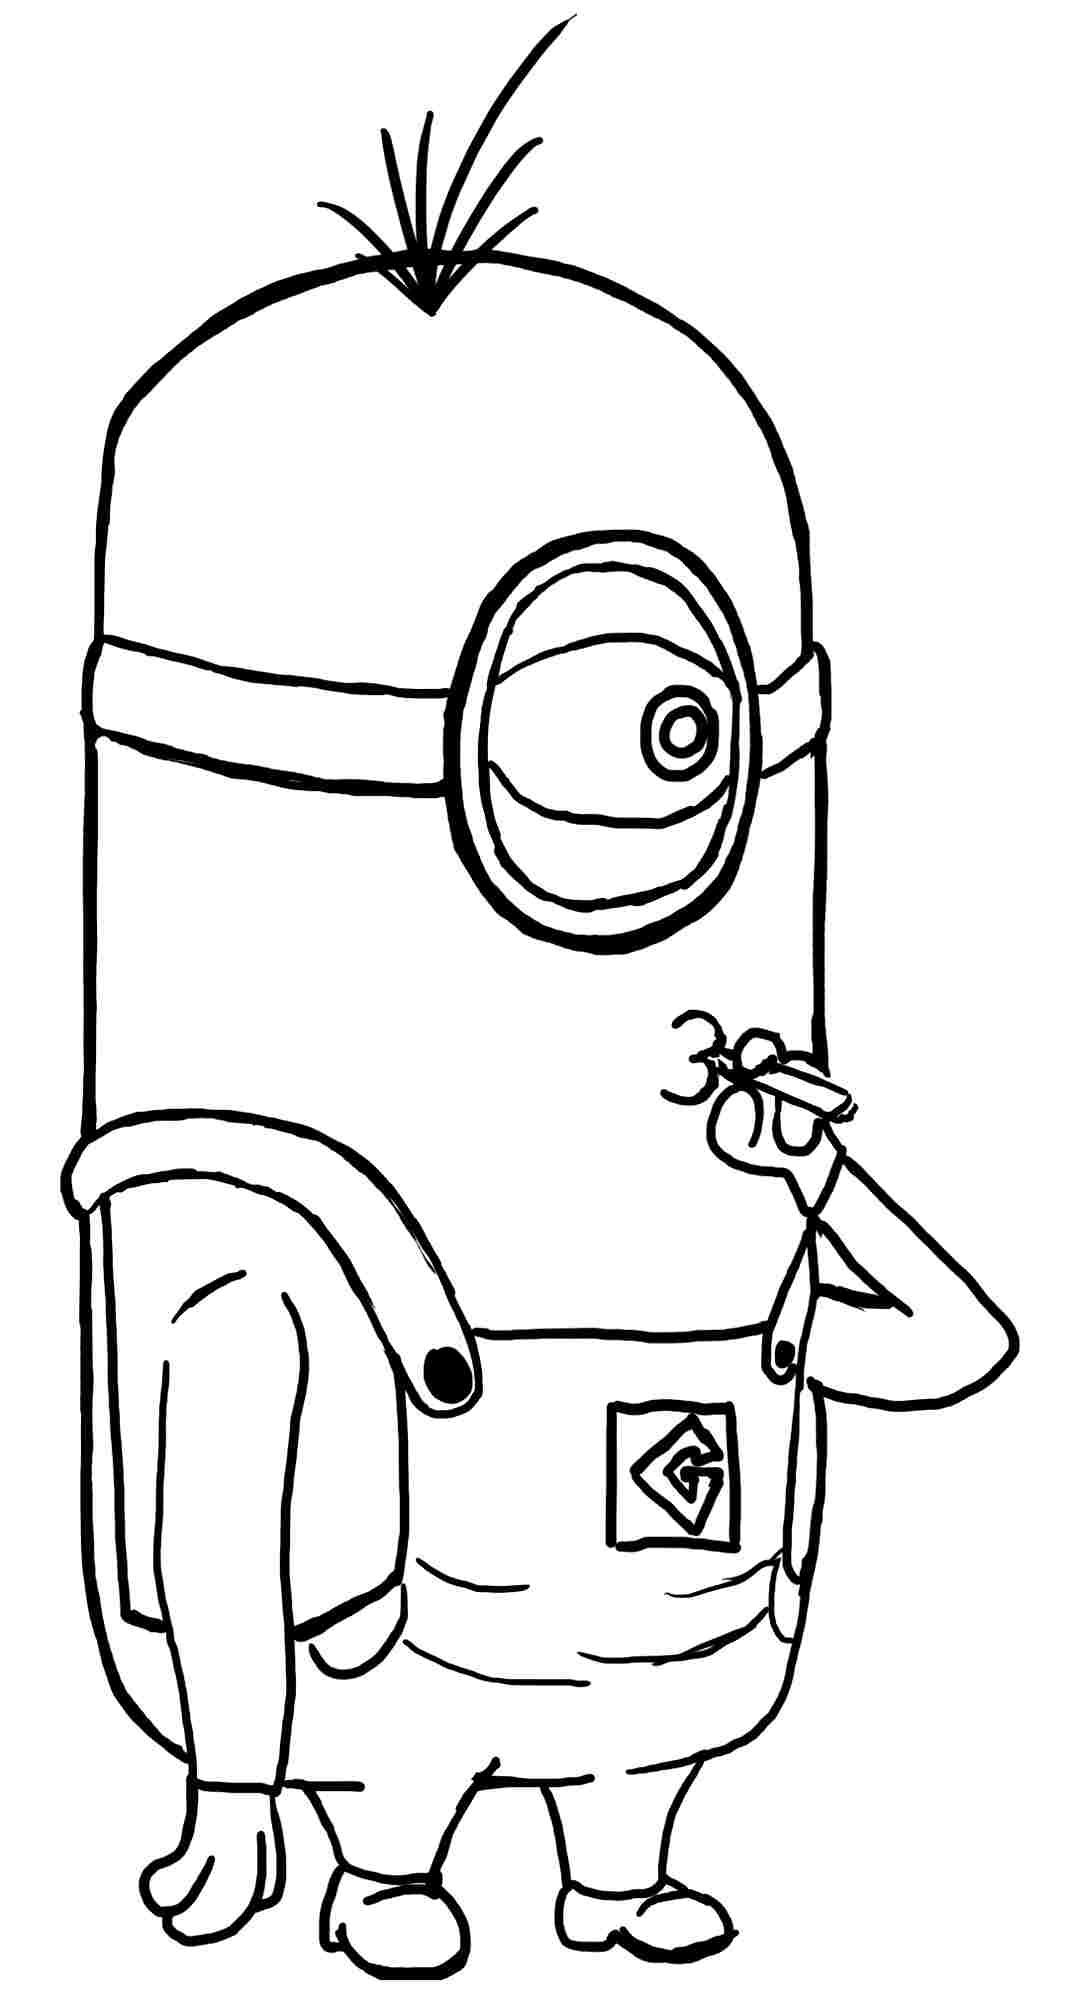 despicable me minions coloring pages despicable me 3 minion coloring page wecoloringpagecom coloring pages despicable me minions